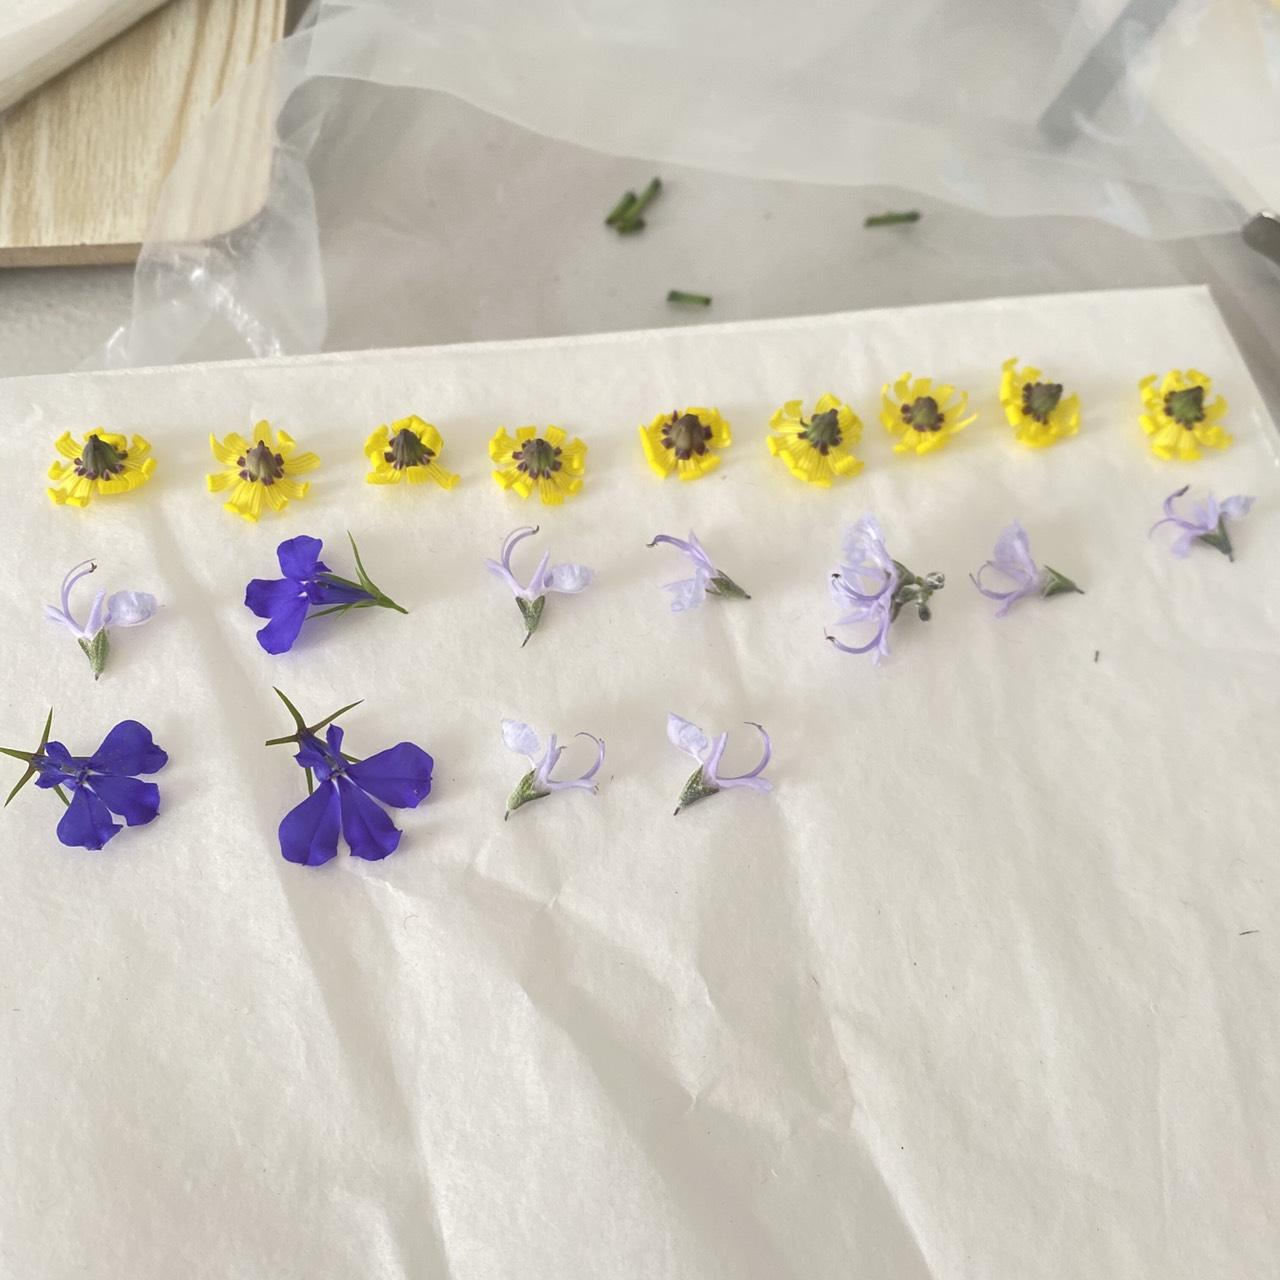 Making dried flowers